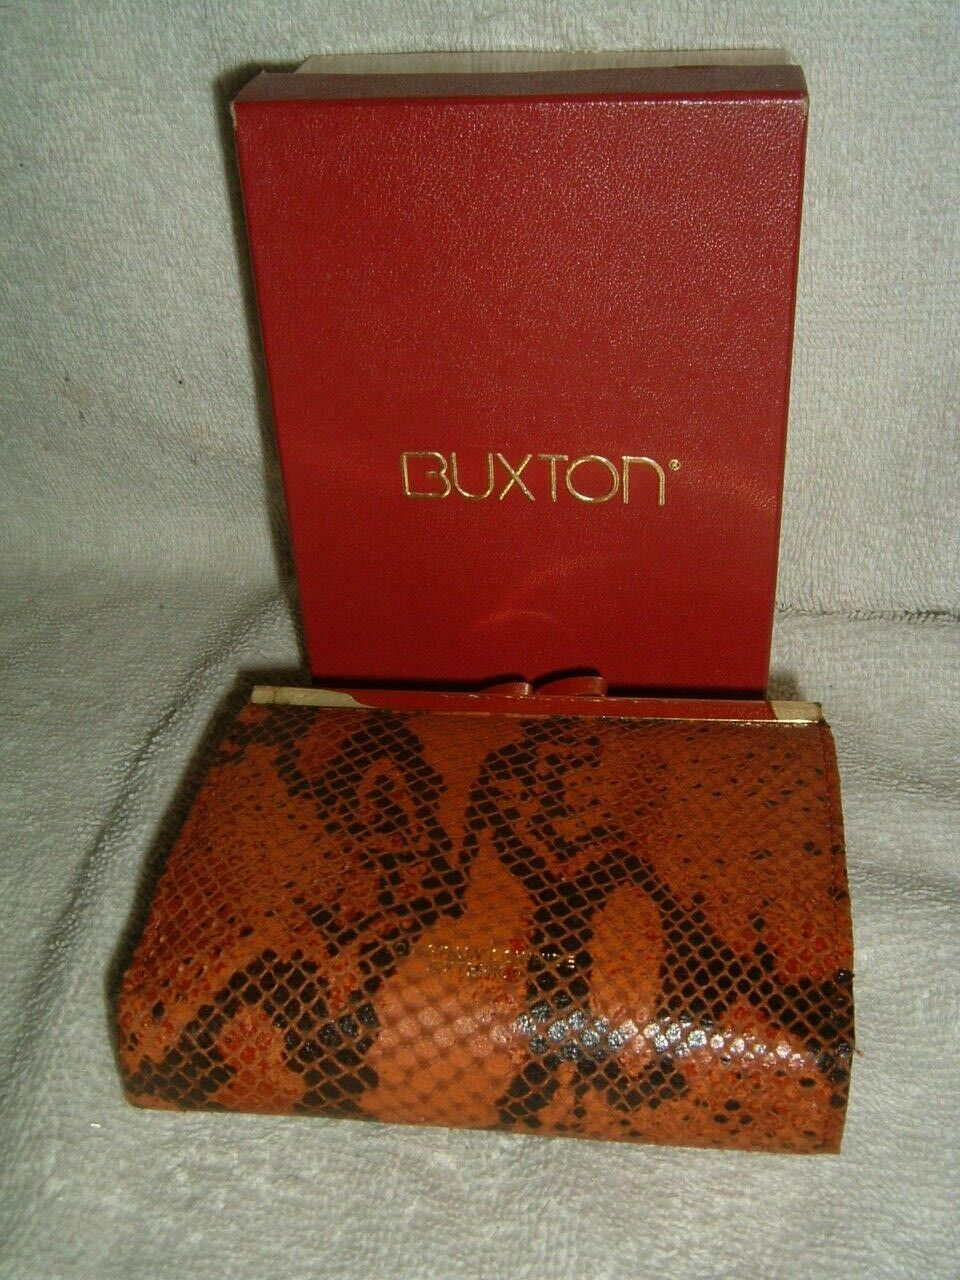 Buxton Cowhide Double Cardex Womens Wallet Brown & Black Animal Print New W/ Box